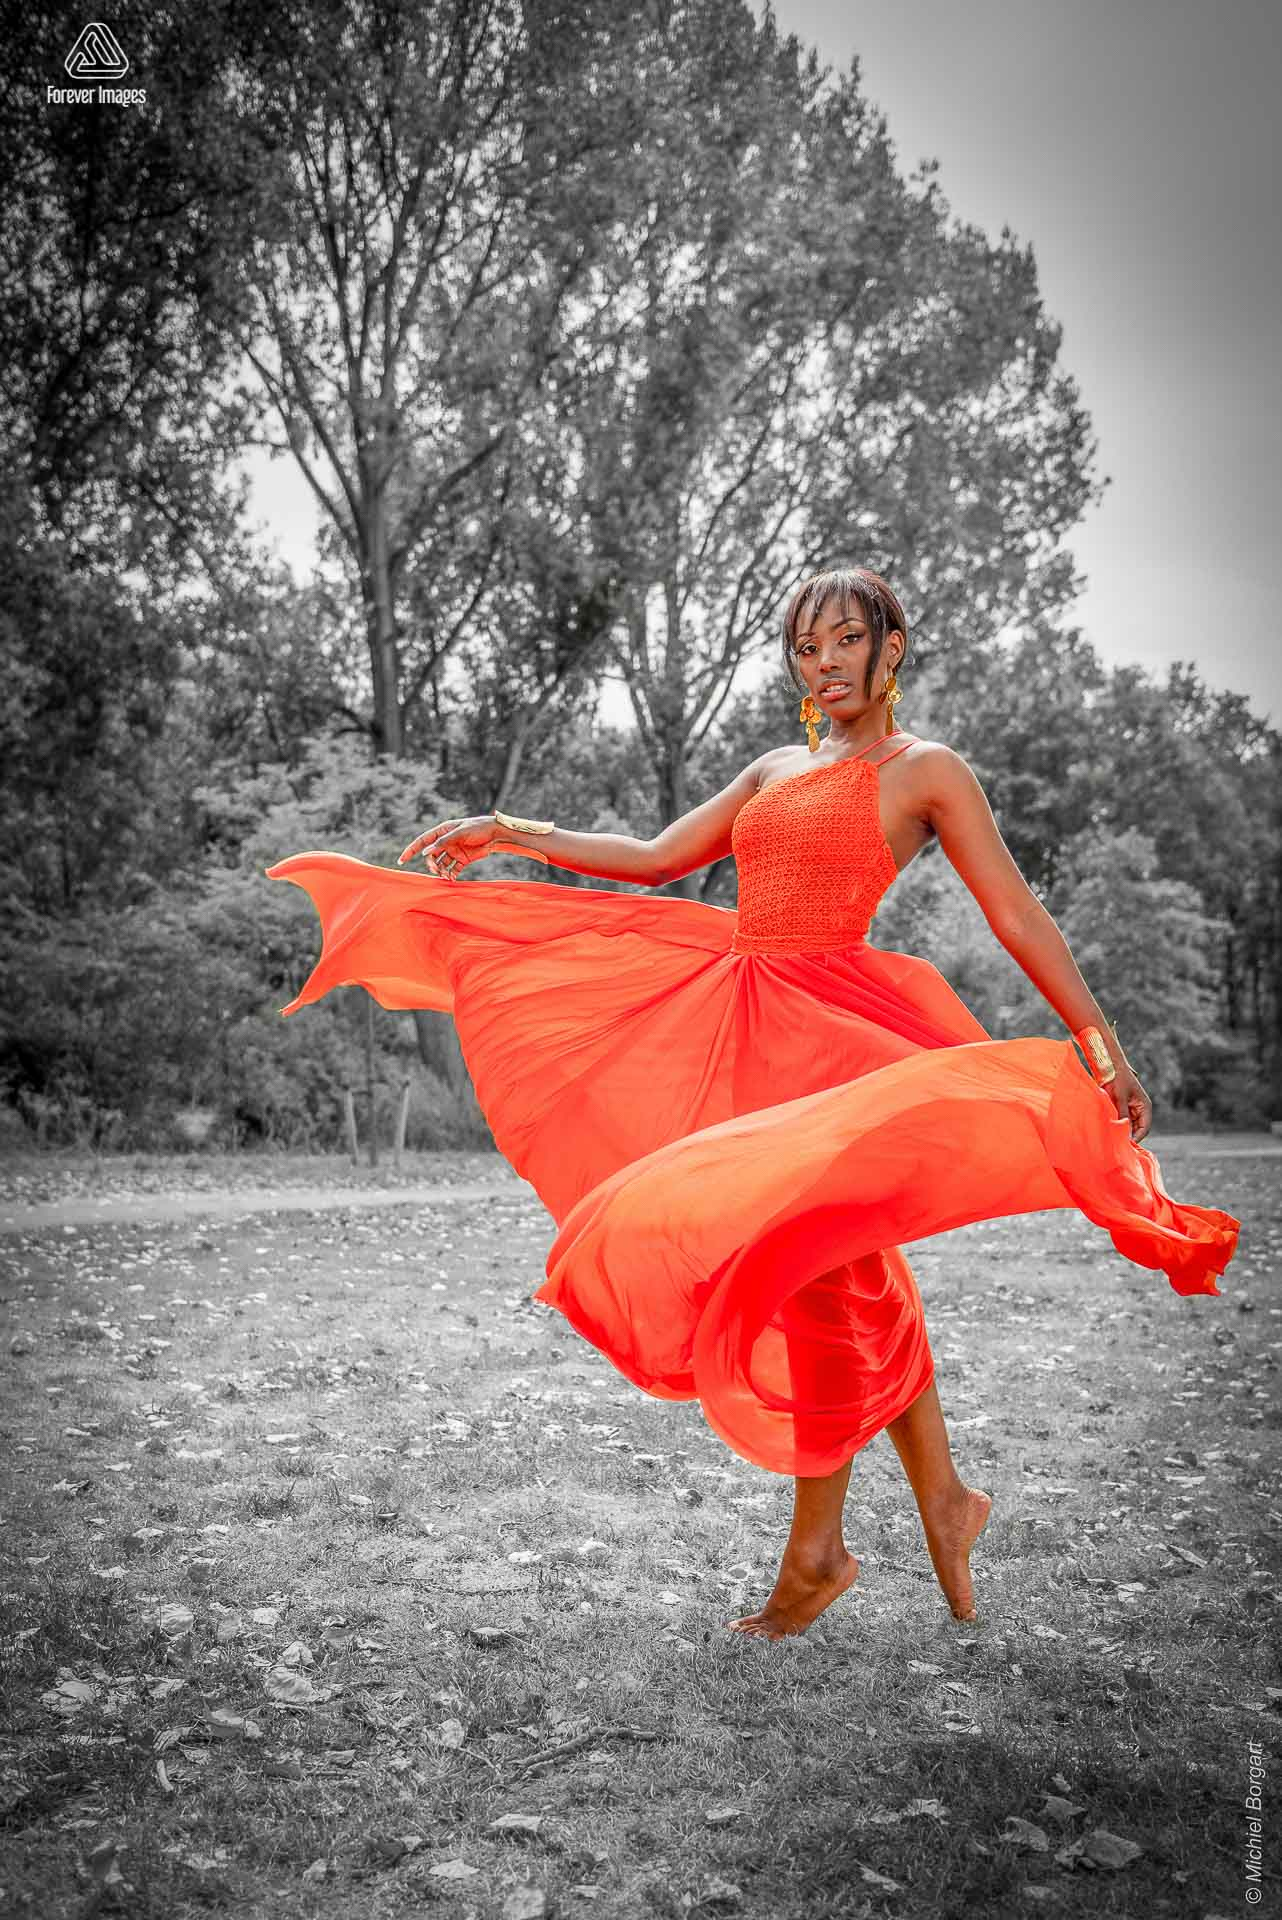 Fashion photo urben shoot orange dress turn Amsterdam | Mariana Pietersz David Cardenas Miss Avantgarde | Fashion Photographer Michiel Borgart - Forever Images.